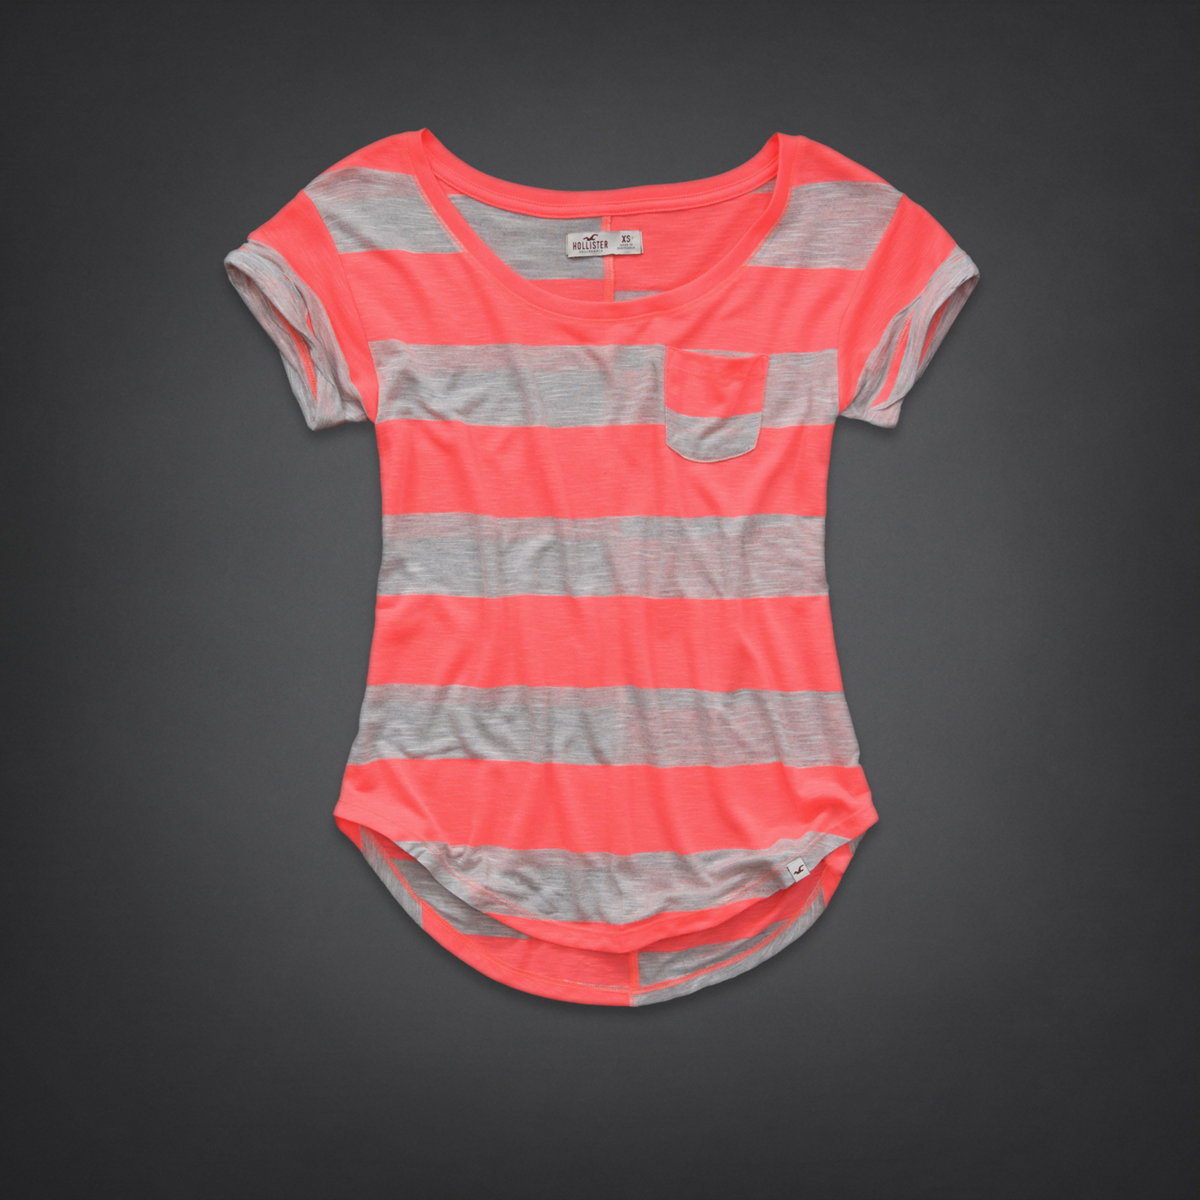 hollister clothes for women - photo #44